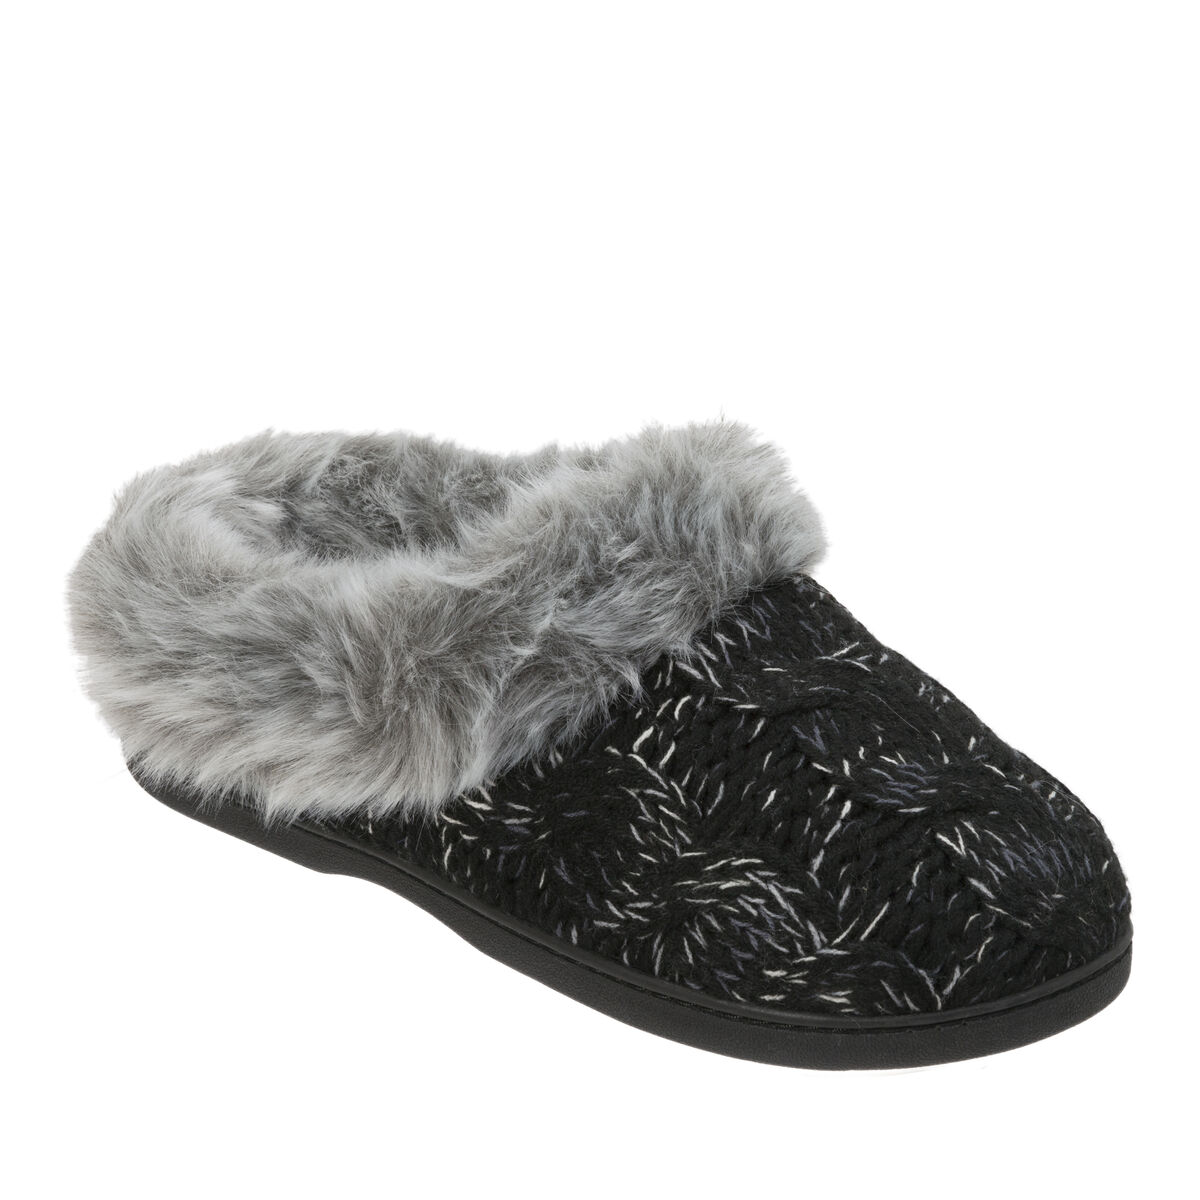 Women's Space-Dye Cable Knit Clog